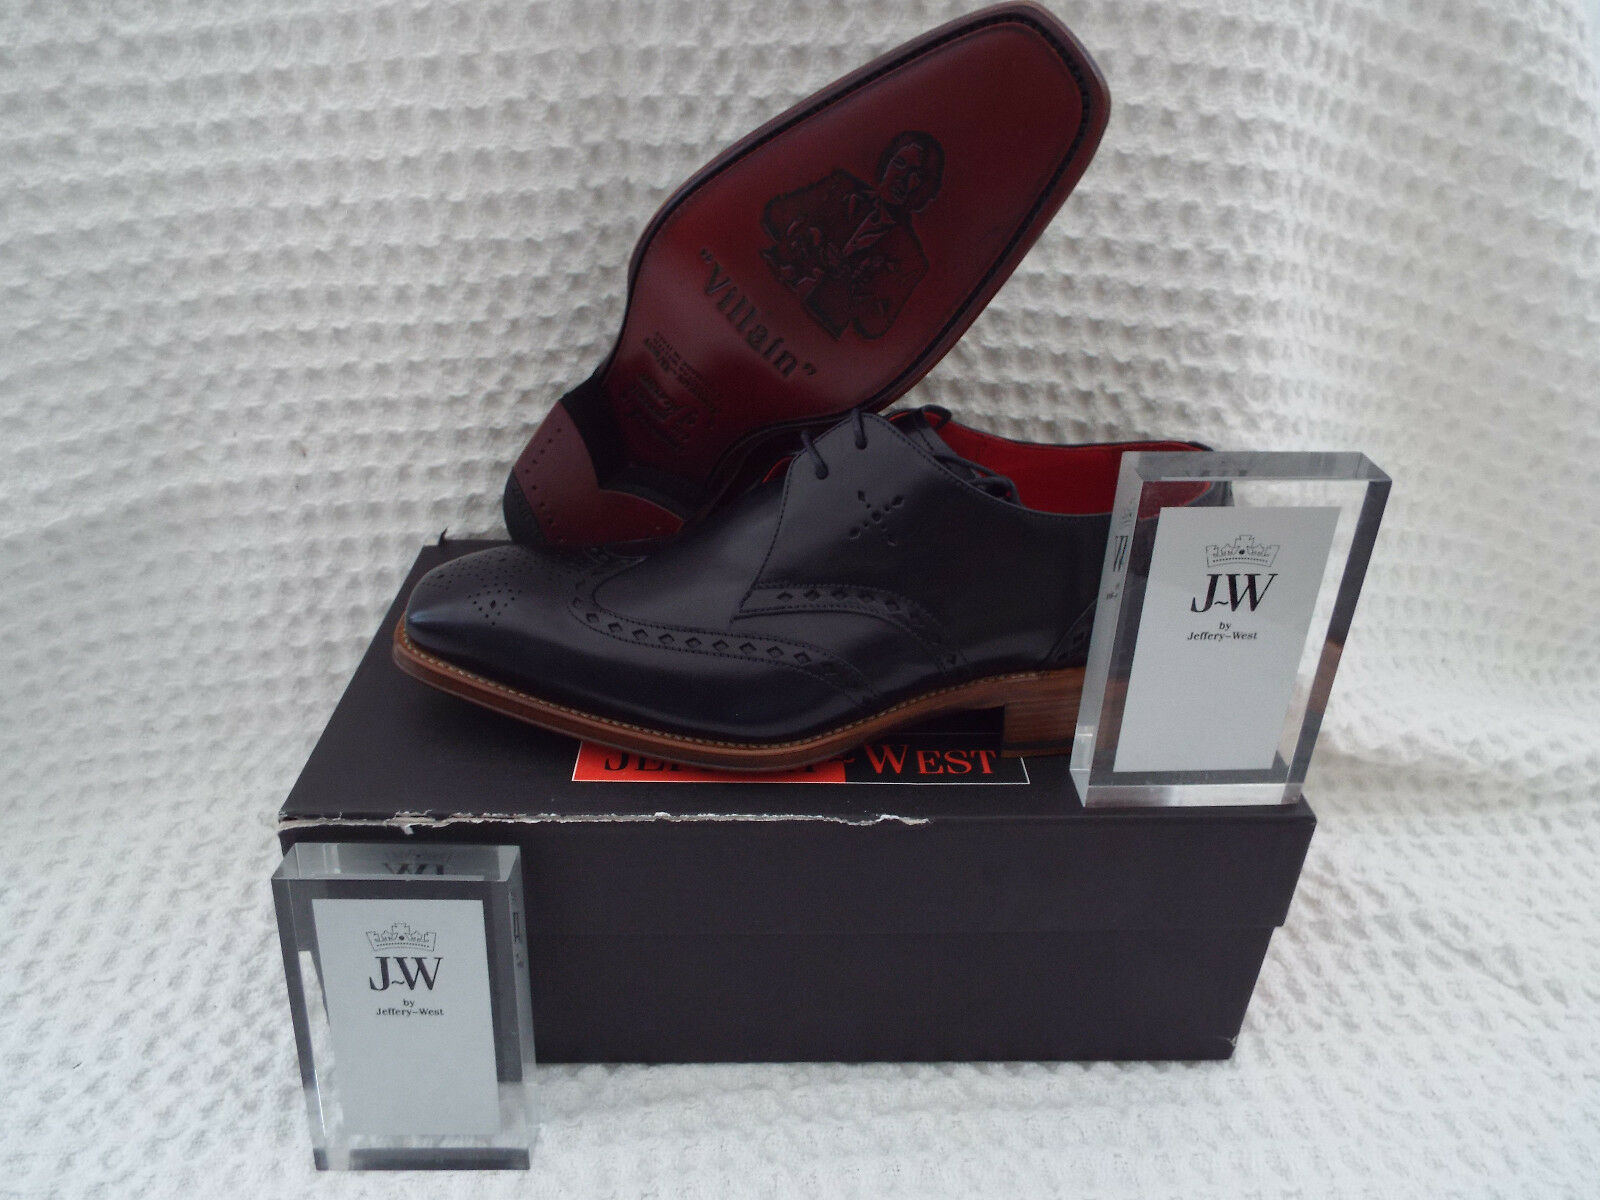 JEFFERY WEST Canfield Polished Derby Schuhes